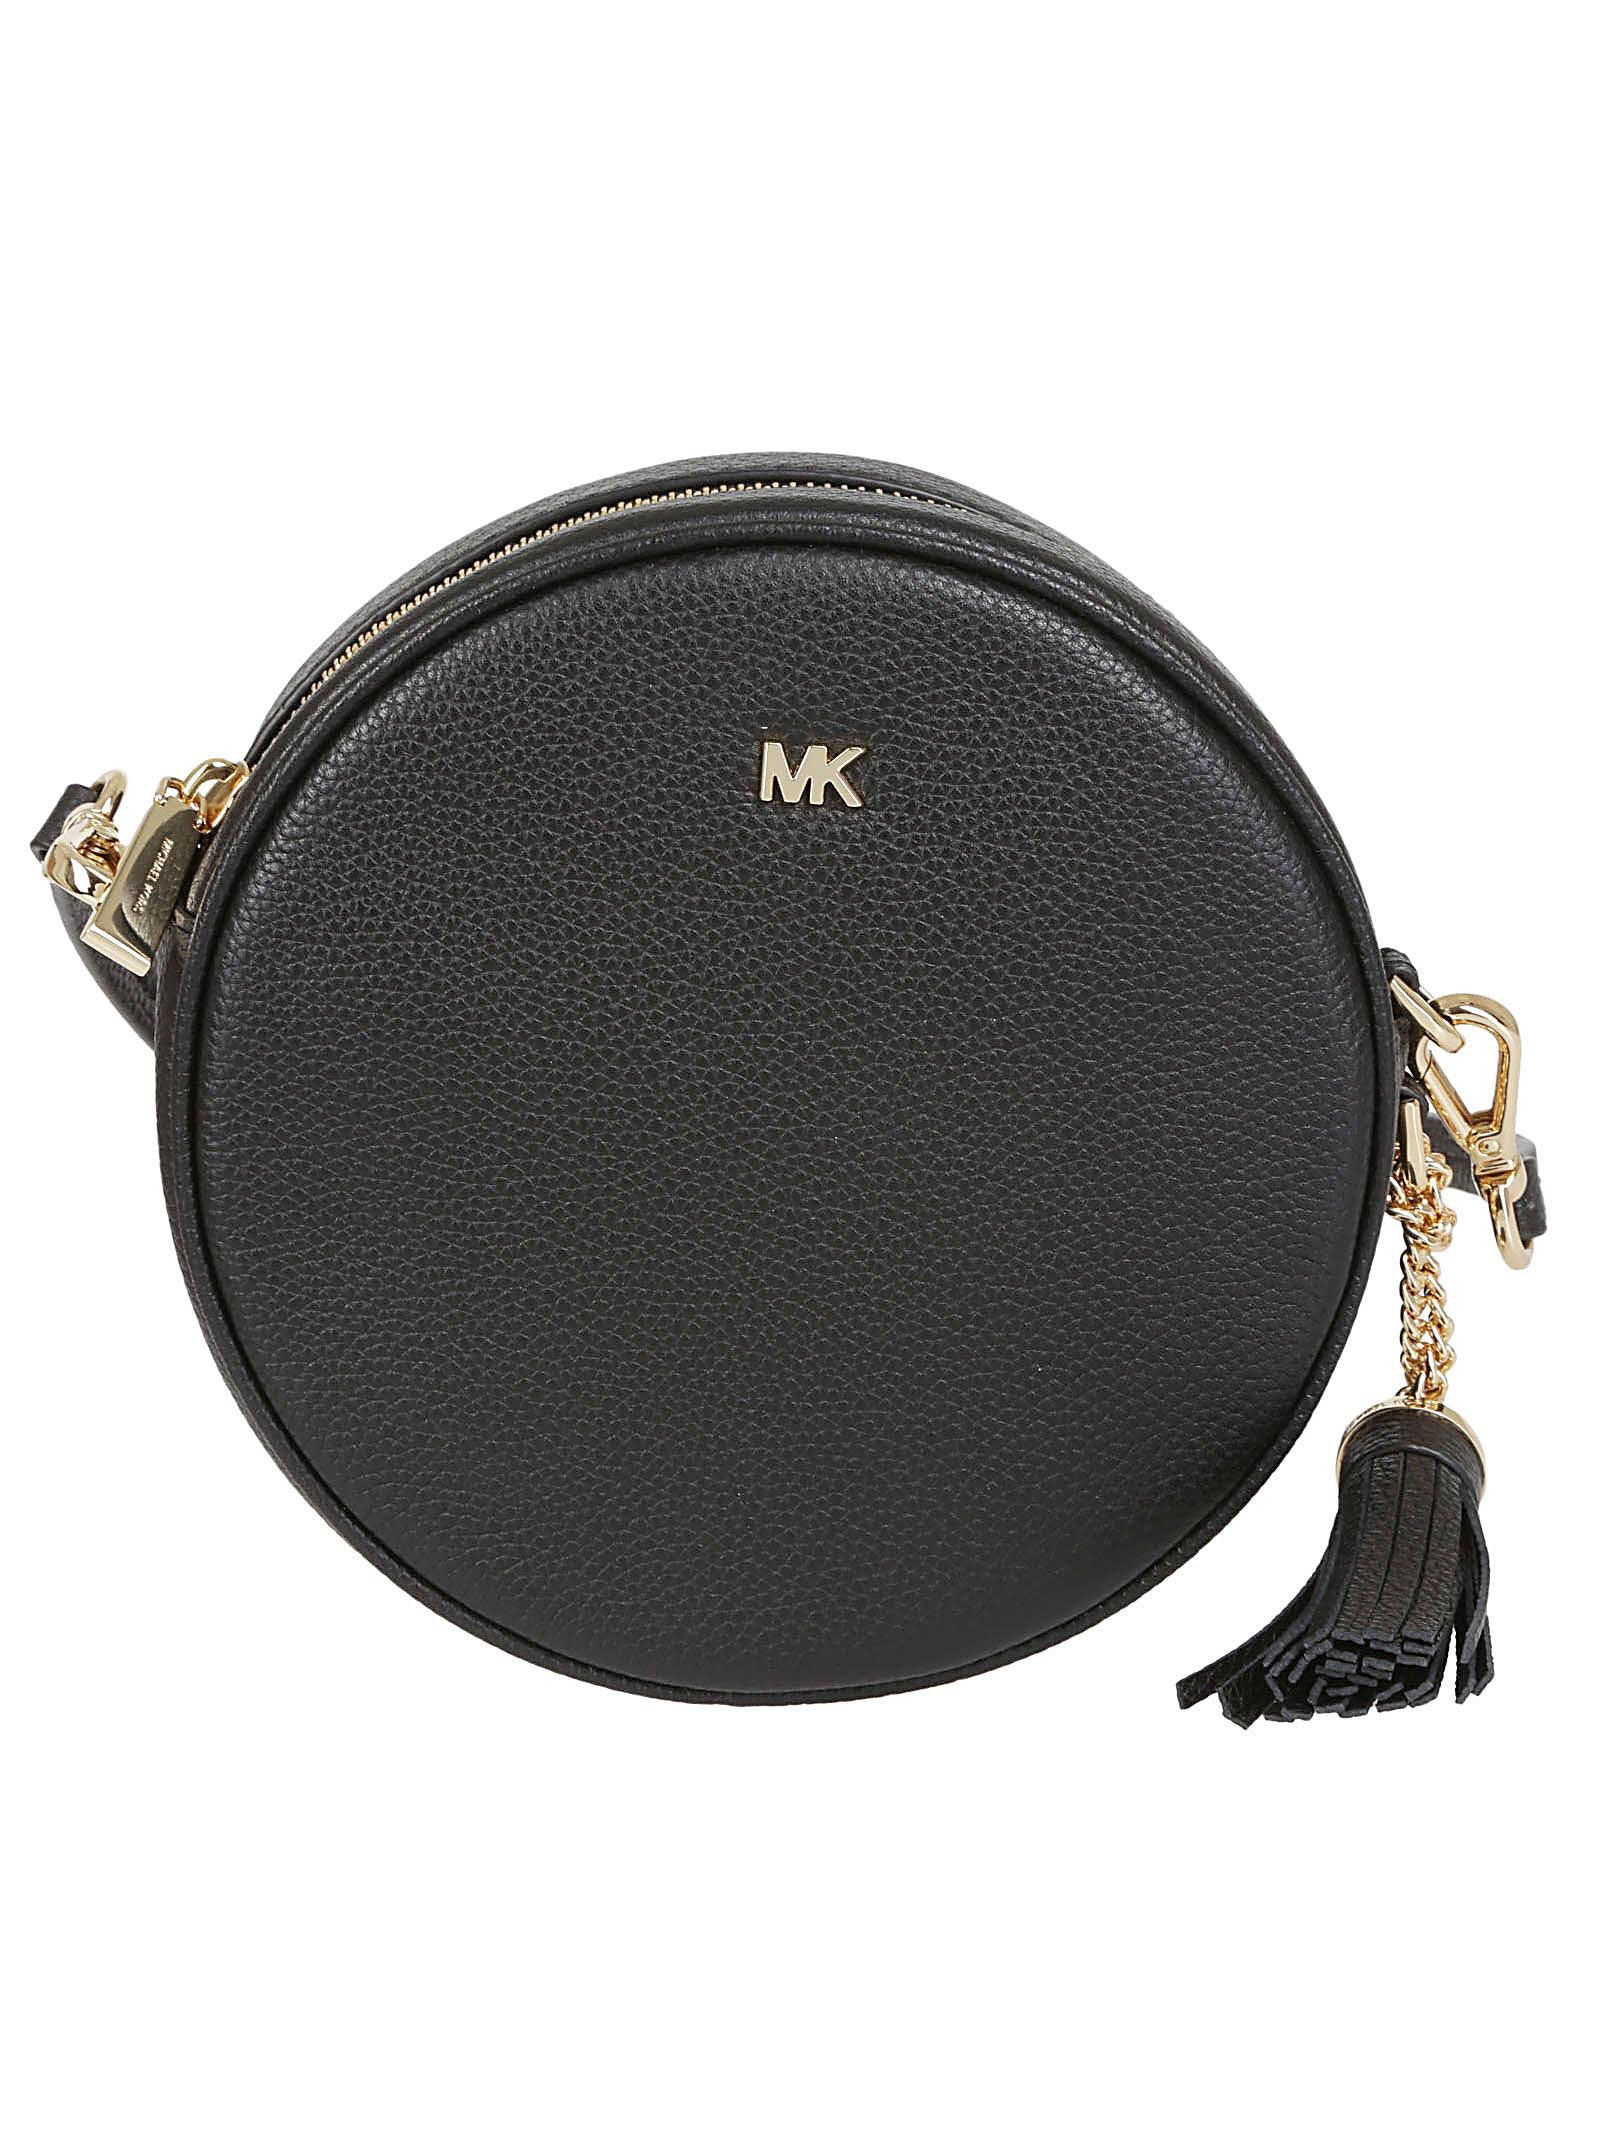 Michael Kors Mercer Medium Shoulder Bag